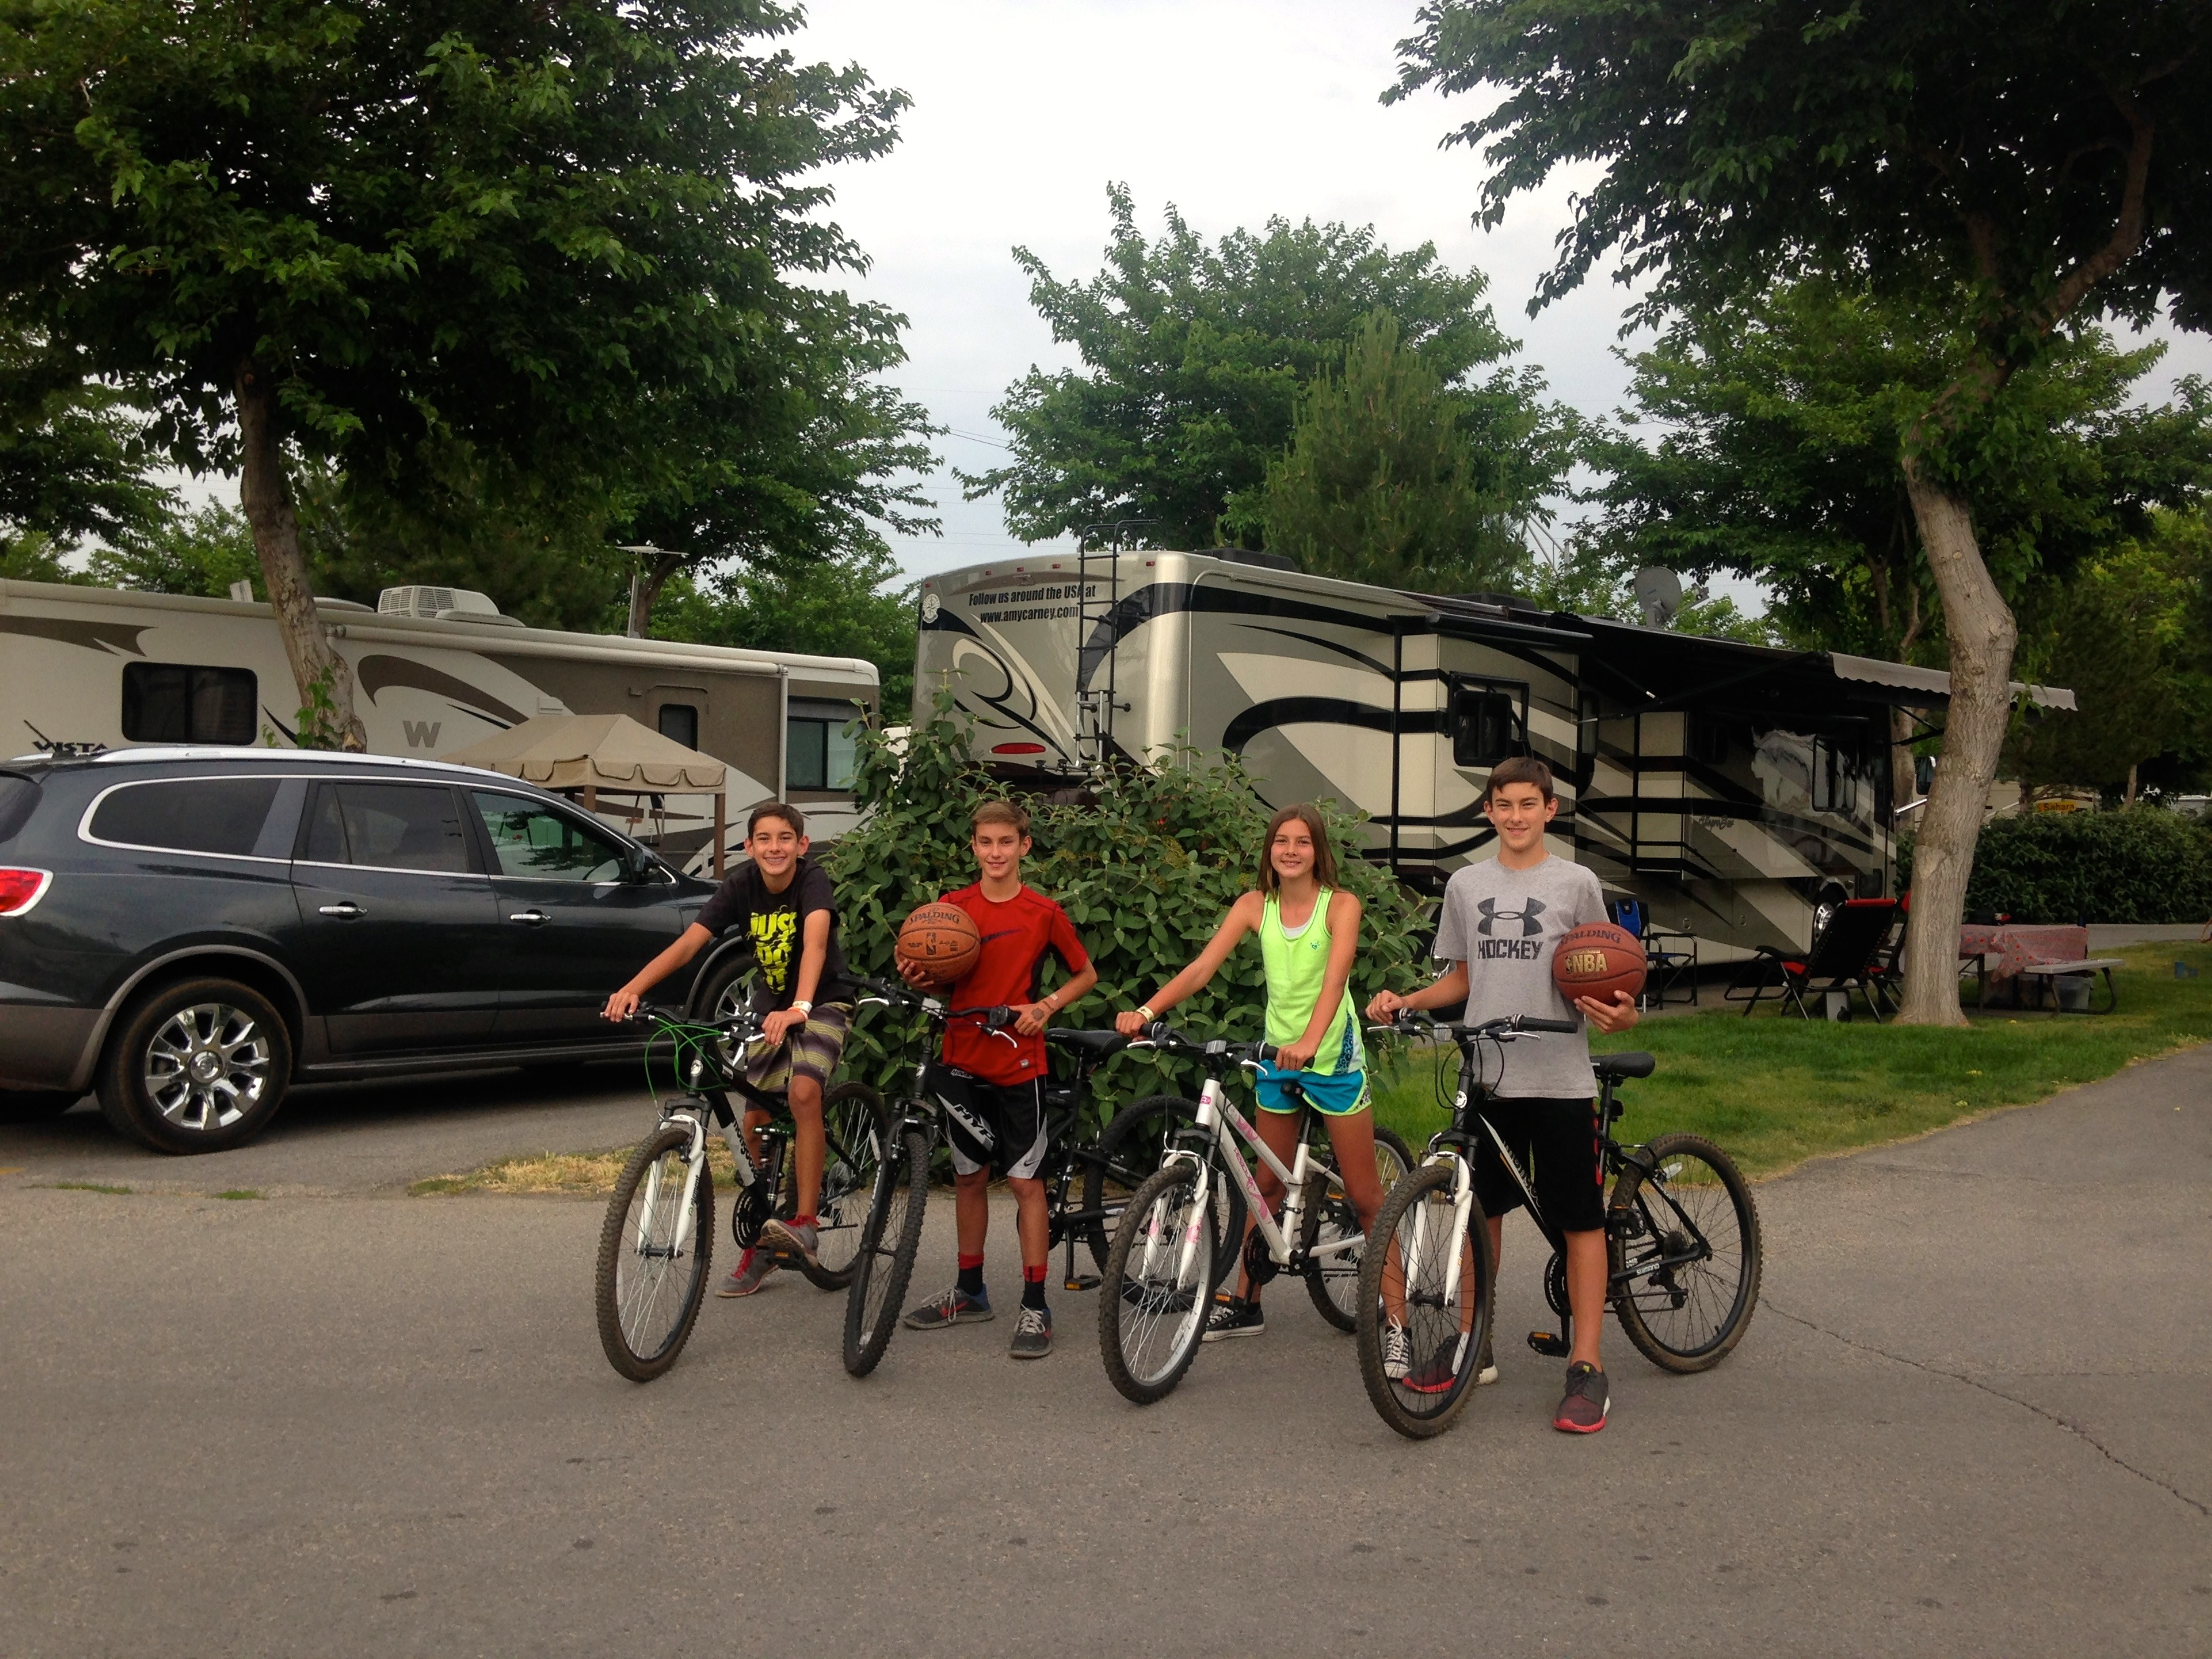 the carney family at a KOA campground in Salt Lake City